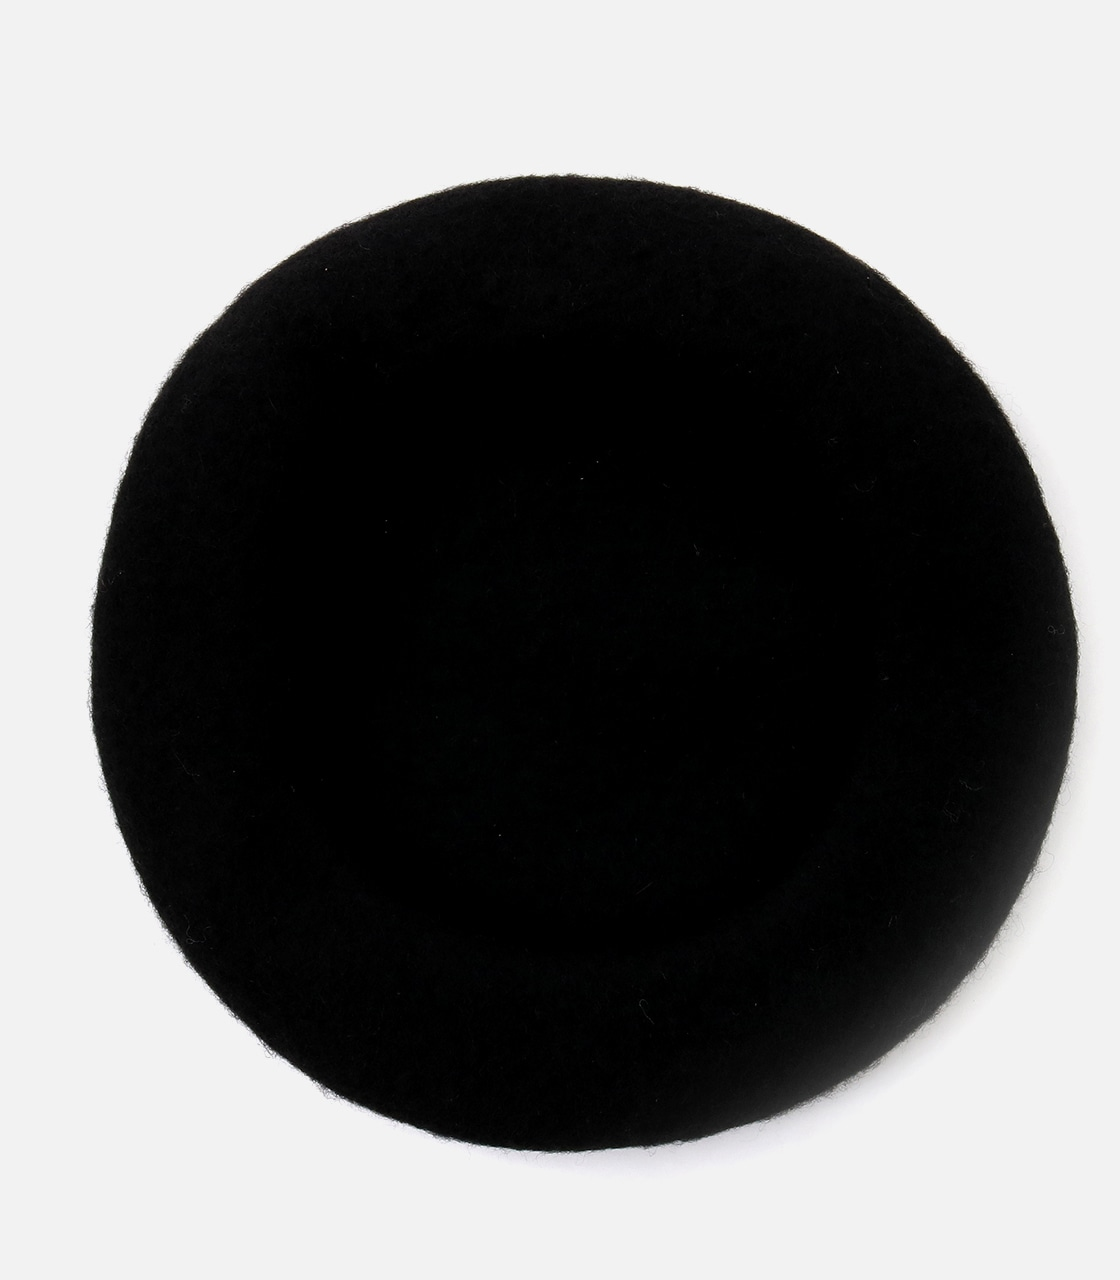 【AZUL BY MOUSSY】BASQUE BERET 詳細画像 BLK 4